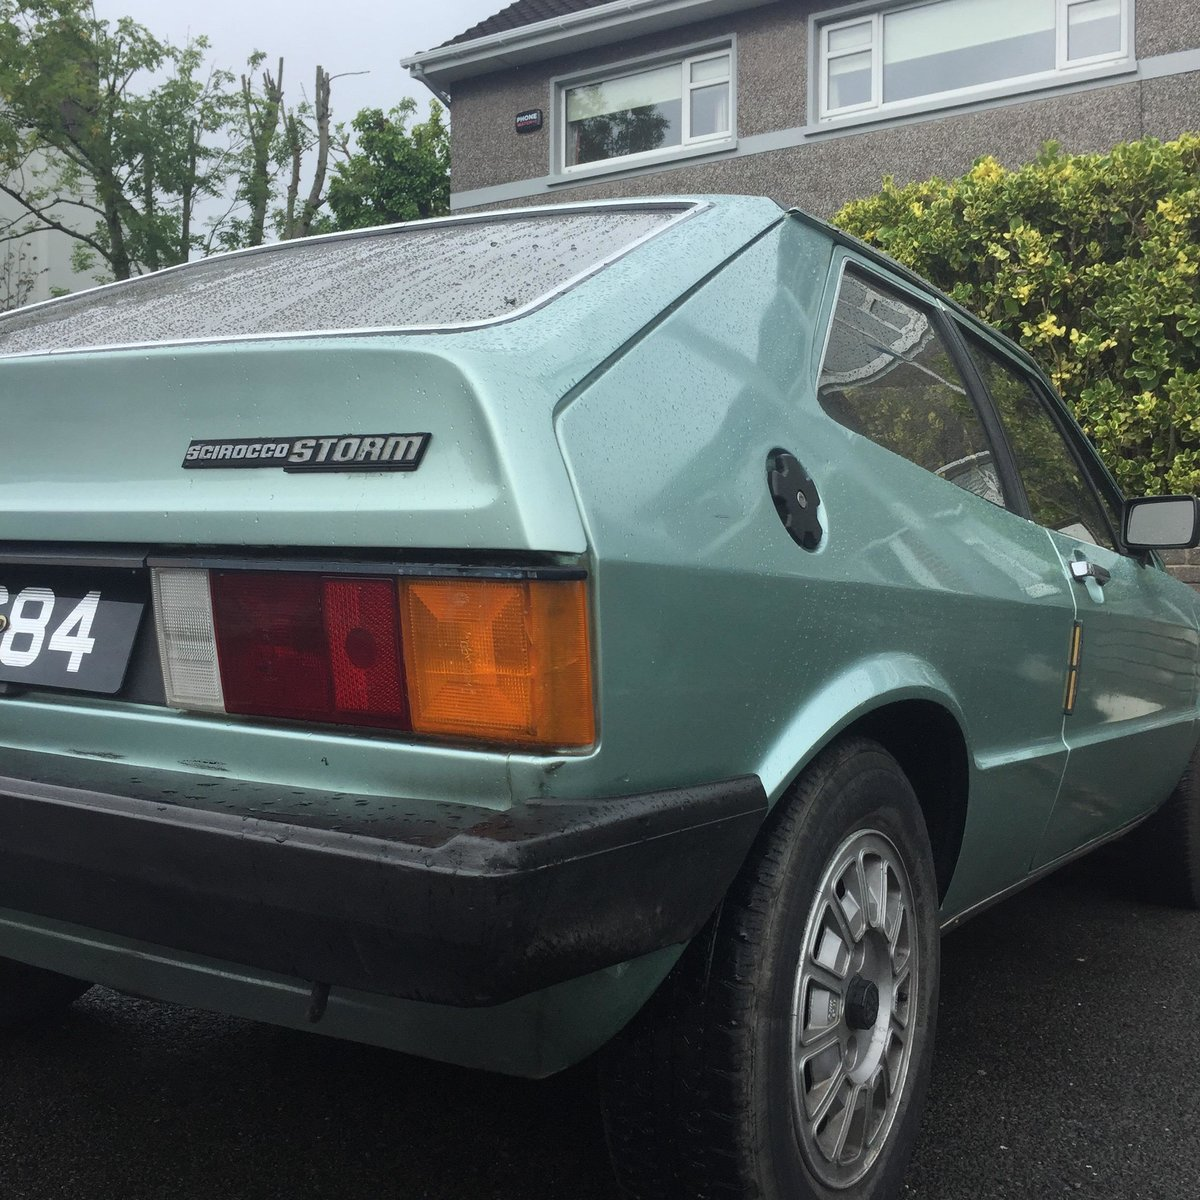 1979 VW MK1 SCIROCCO STORM For Sale (picture 4 of 6)